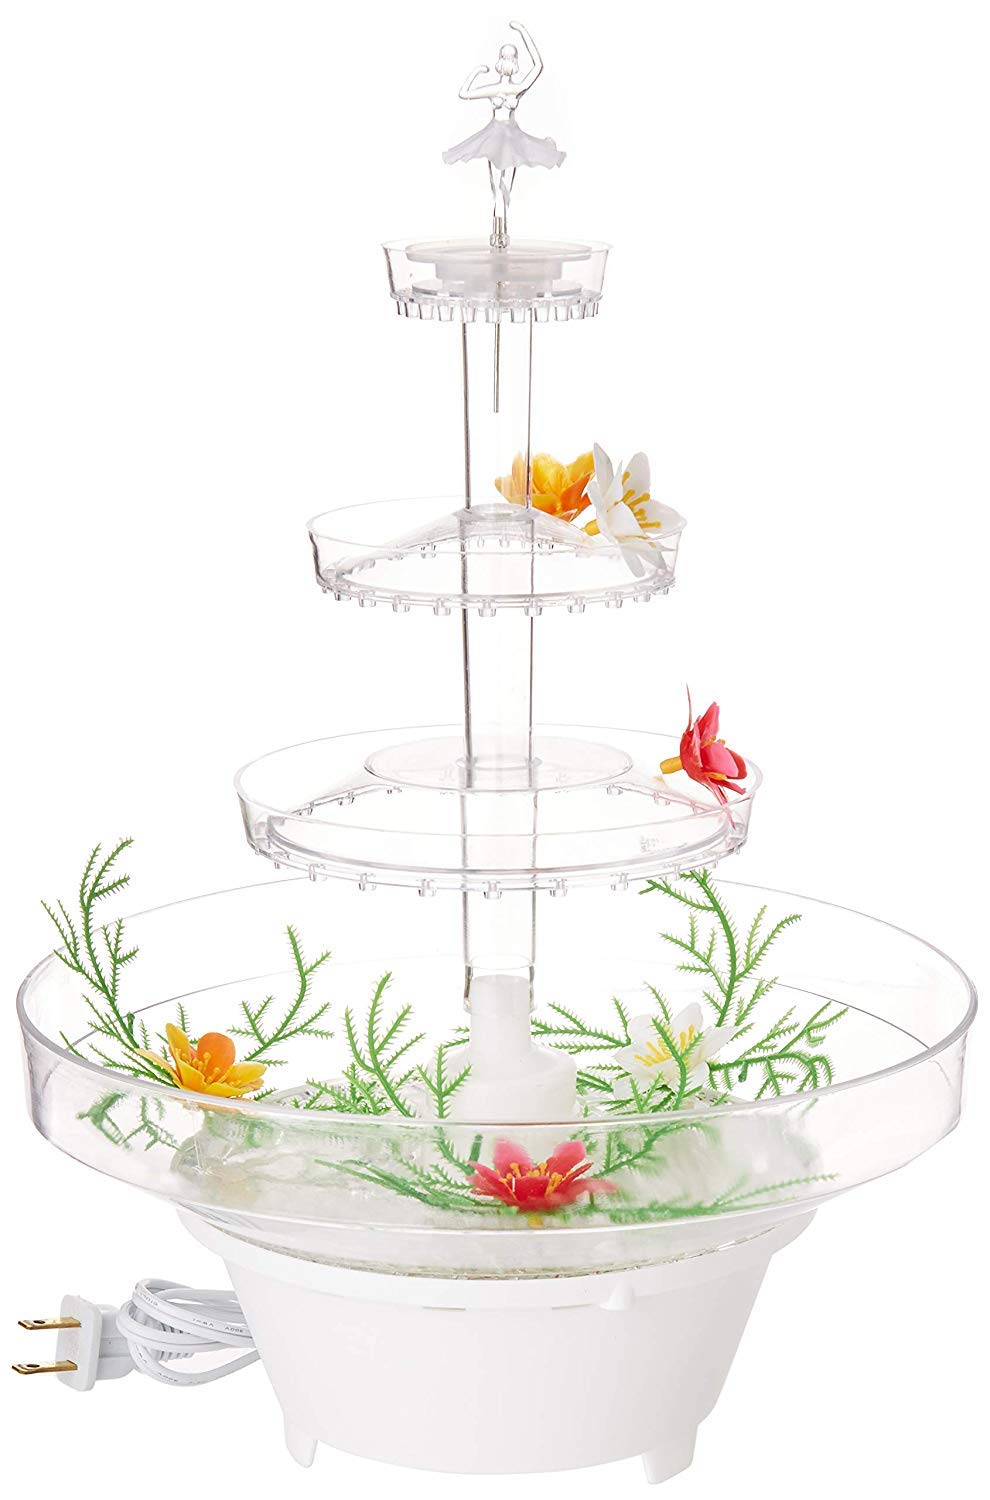 Lighted Plastic Water Fountain for Weddings, Garden, Home, Office, or Cake Centerpiece